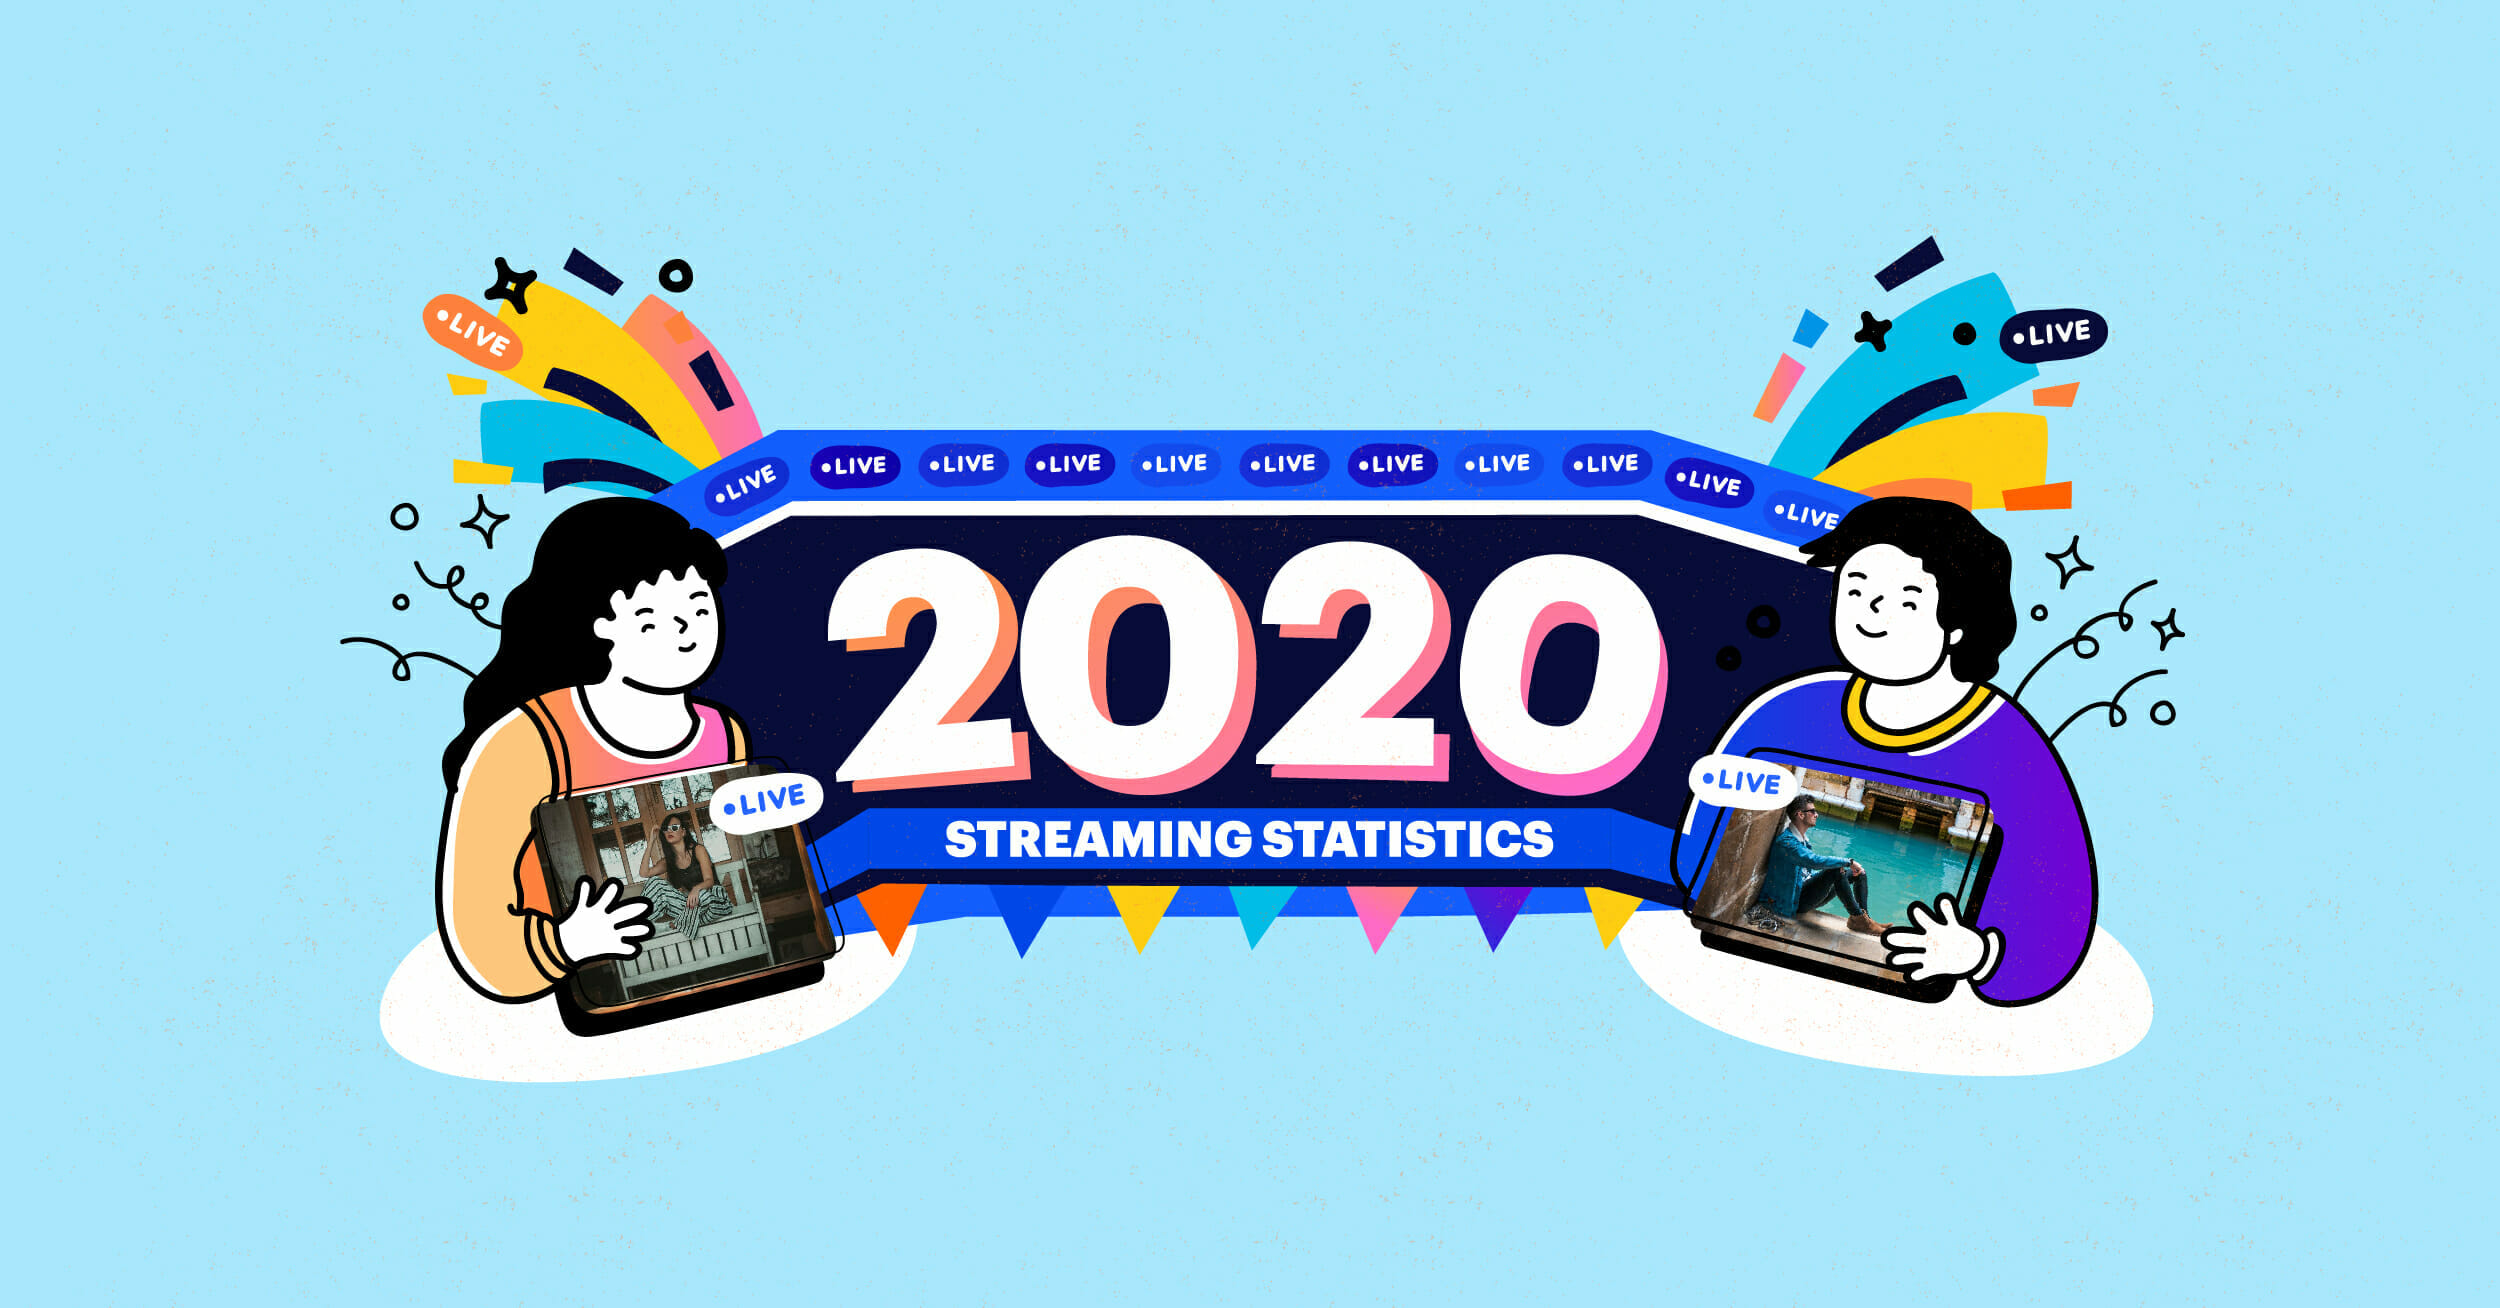 2020 video streaming statistics